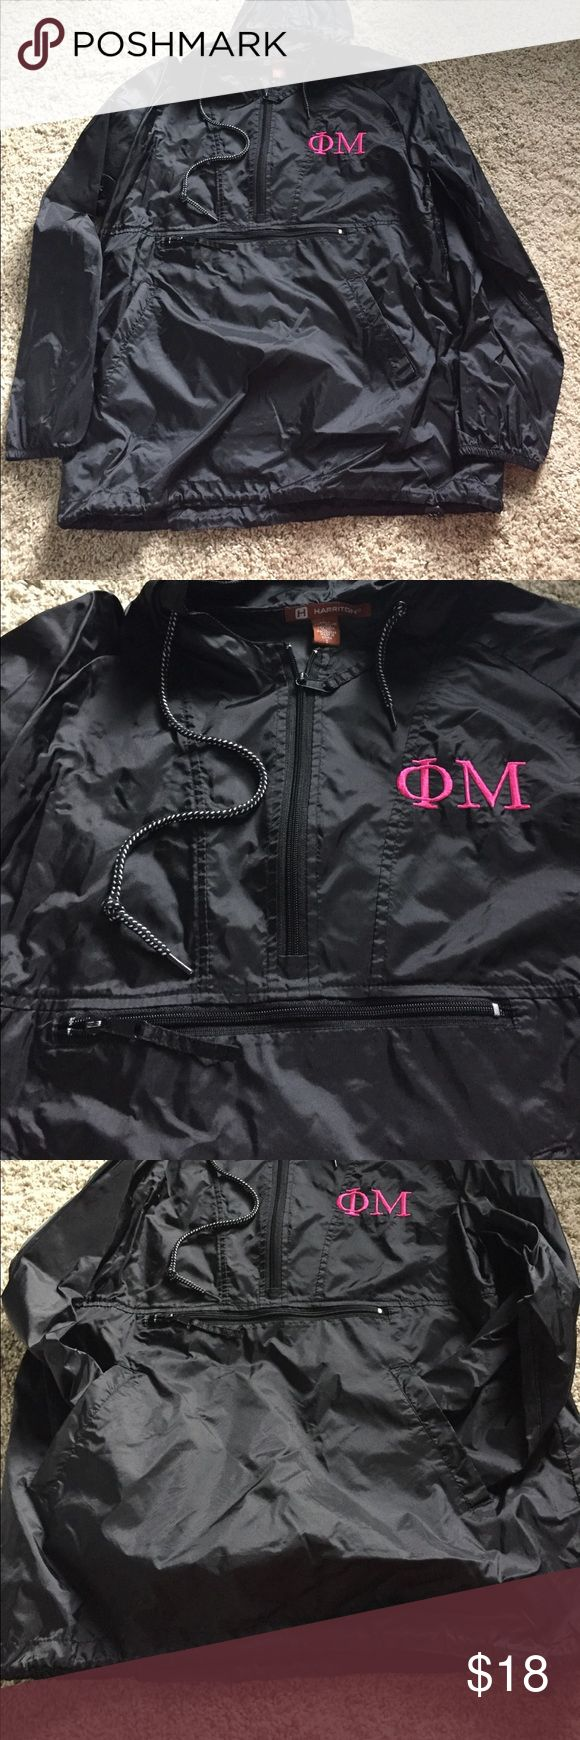 Phi Mu rain jacket/windbreaker 💖 Adorable black rain jacket with the Phi Mu letters embroidered on the chest. Quarter zip and large zipper pocket across the front. Also has hand pockets, a hood, and adjustable waistband. NWOT Size Small but has an oversized fit. Perfect for big/little baskets!!! 💖 Jackets & Coats